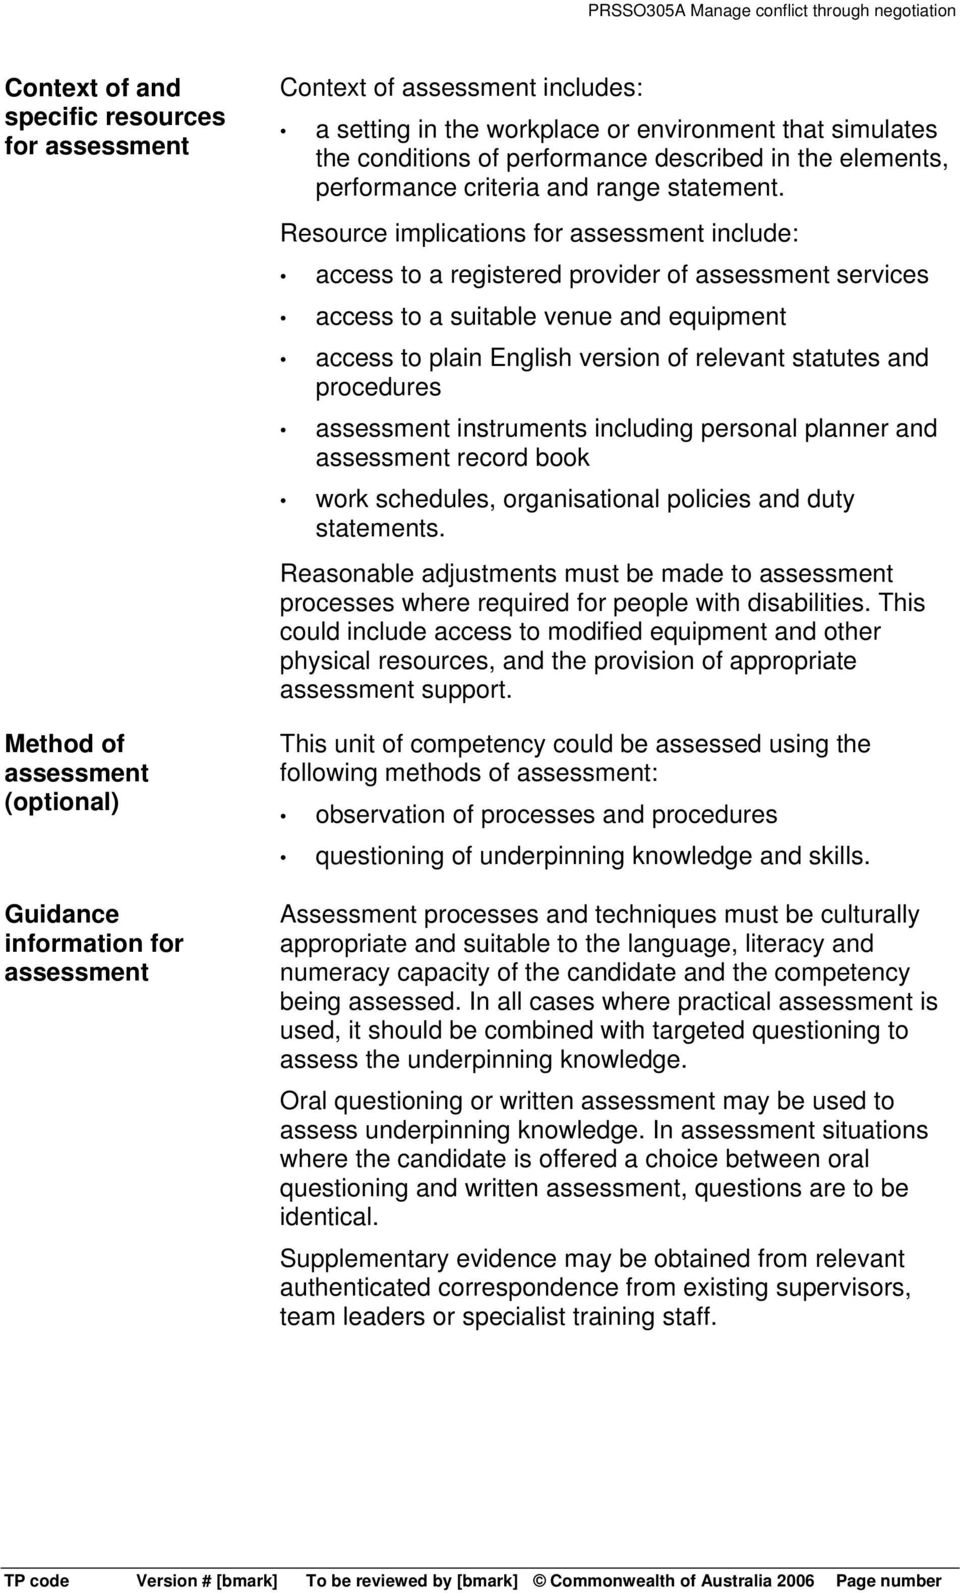 Resource implications for assessment include: access to a registered provider of assessment services access to a suitable venue and equipment access to plain English version of relevant statutes and